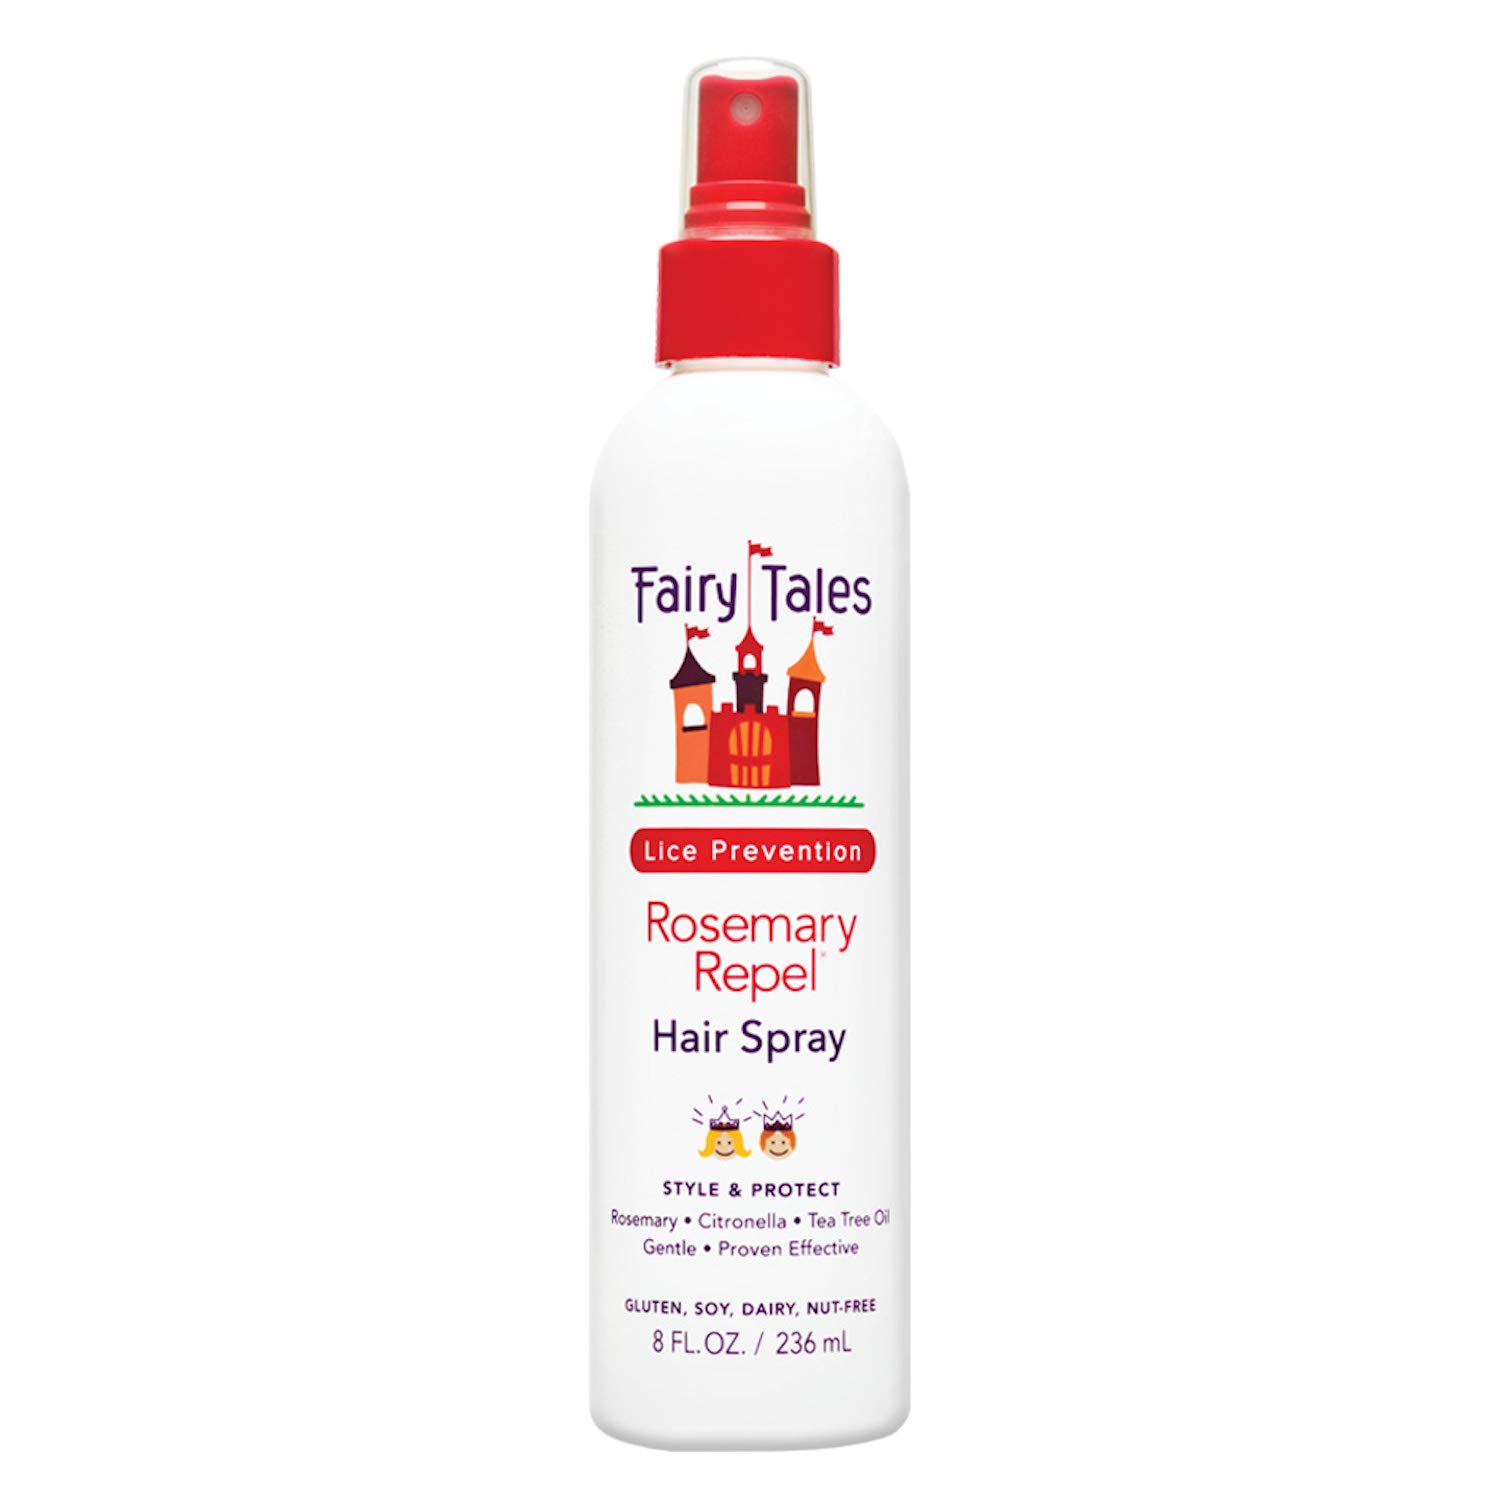 Fairy Tales Rosemary Repel Daily Kid Hair Spray for Lice Prevention - 8 oz 777007